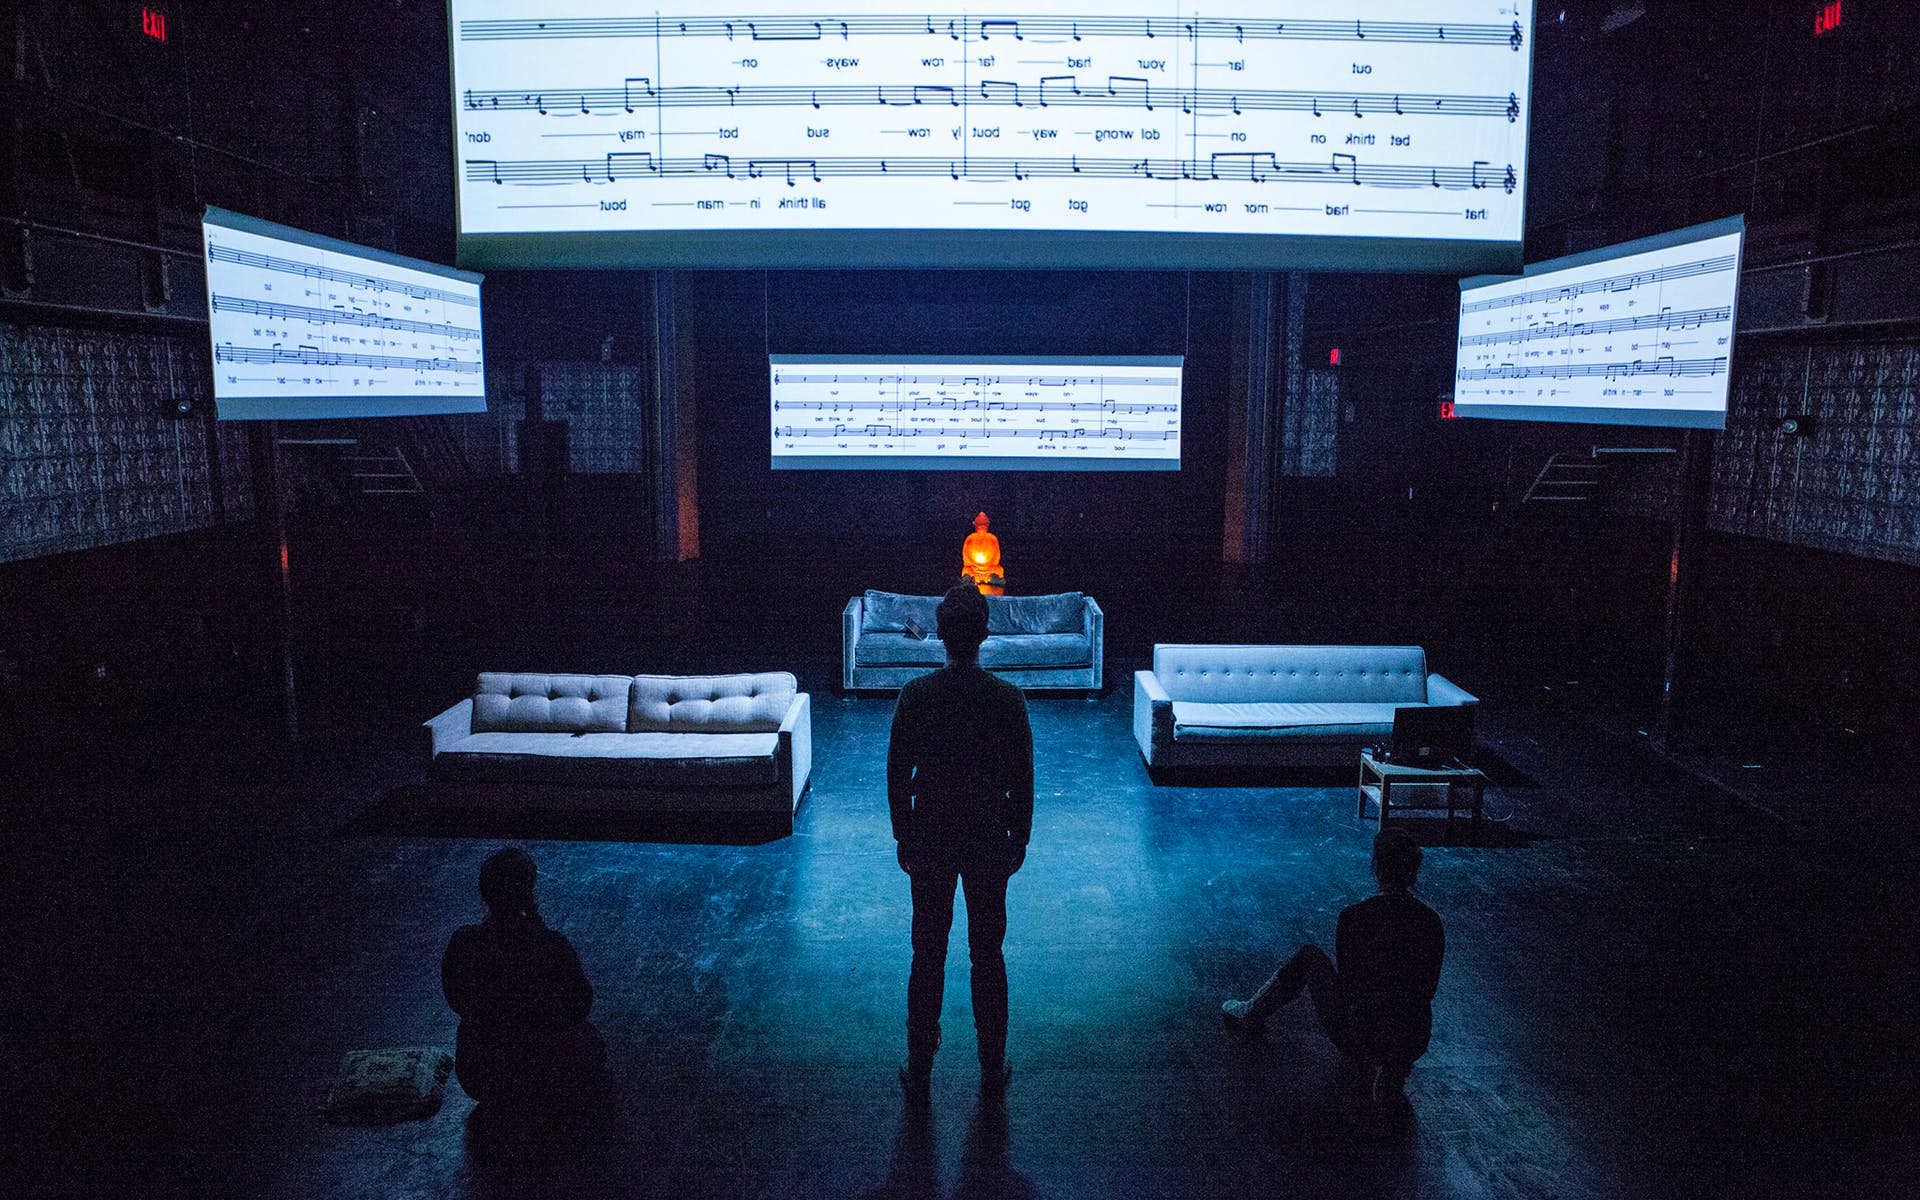 Silhouettes of three people standing and sitting under projections of sheet music.